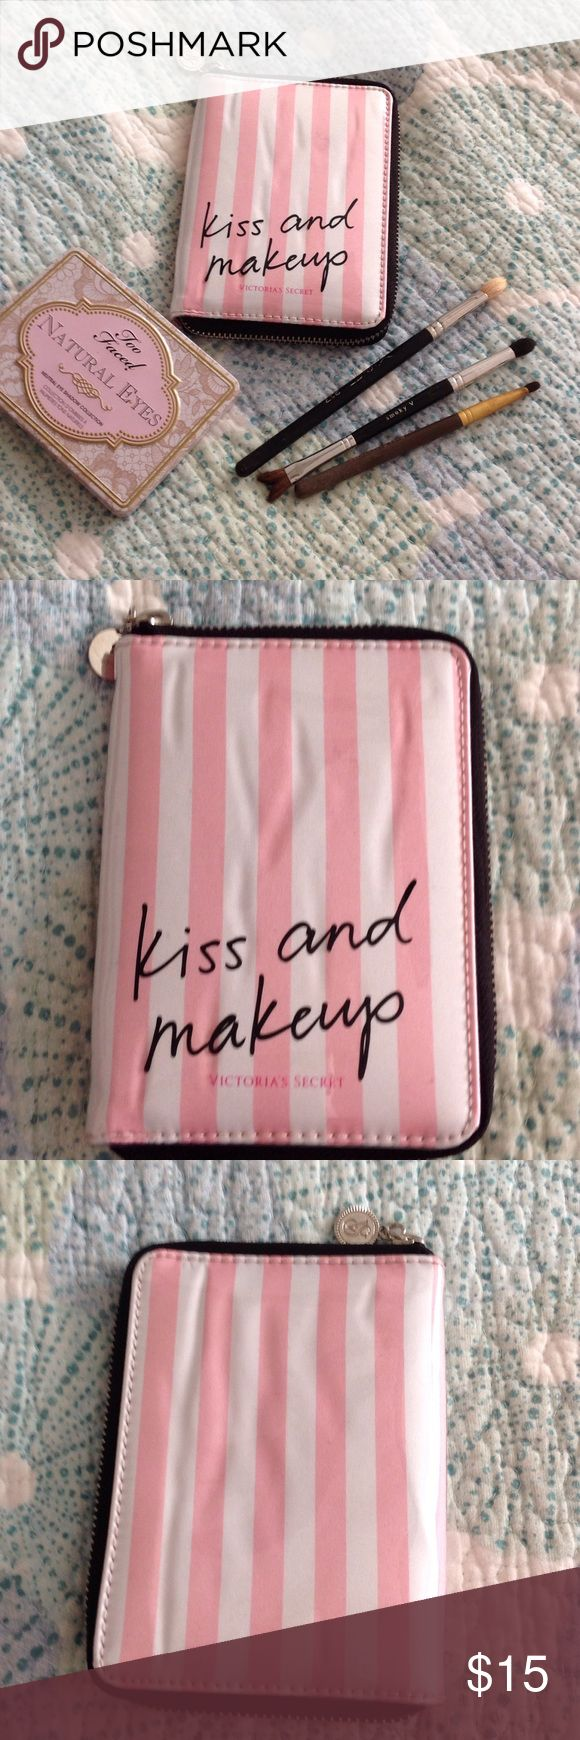 """Victoria's Secret Kiss & Makeup Brush Case Never used but some wrinkling under plastic.  Measures just over 6"""" so only small brushes will fit (see photos to get idea).  Brushes not included Victoria's Secret Bags Cosmetic Bags & Cases"""